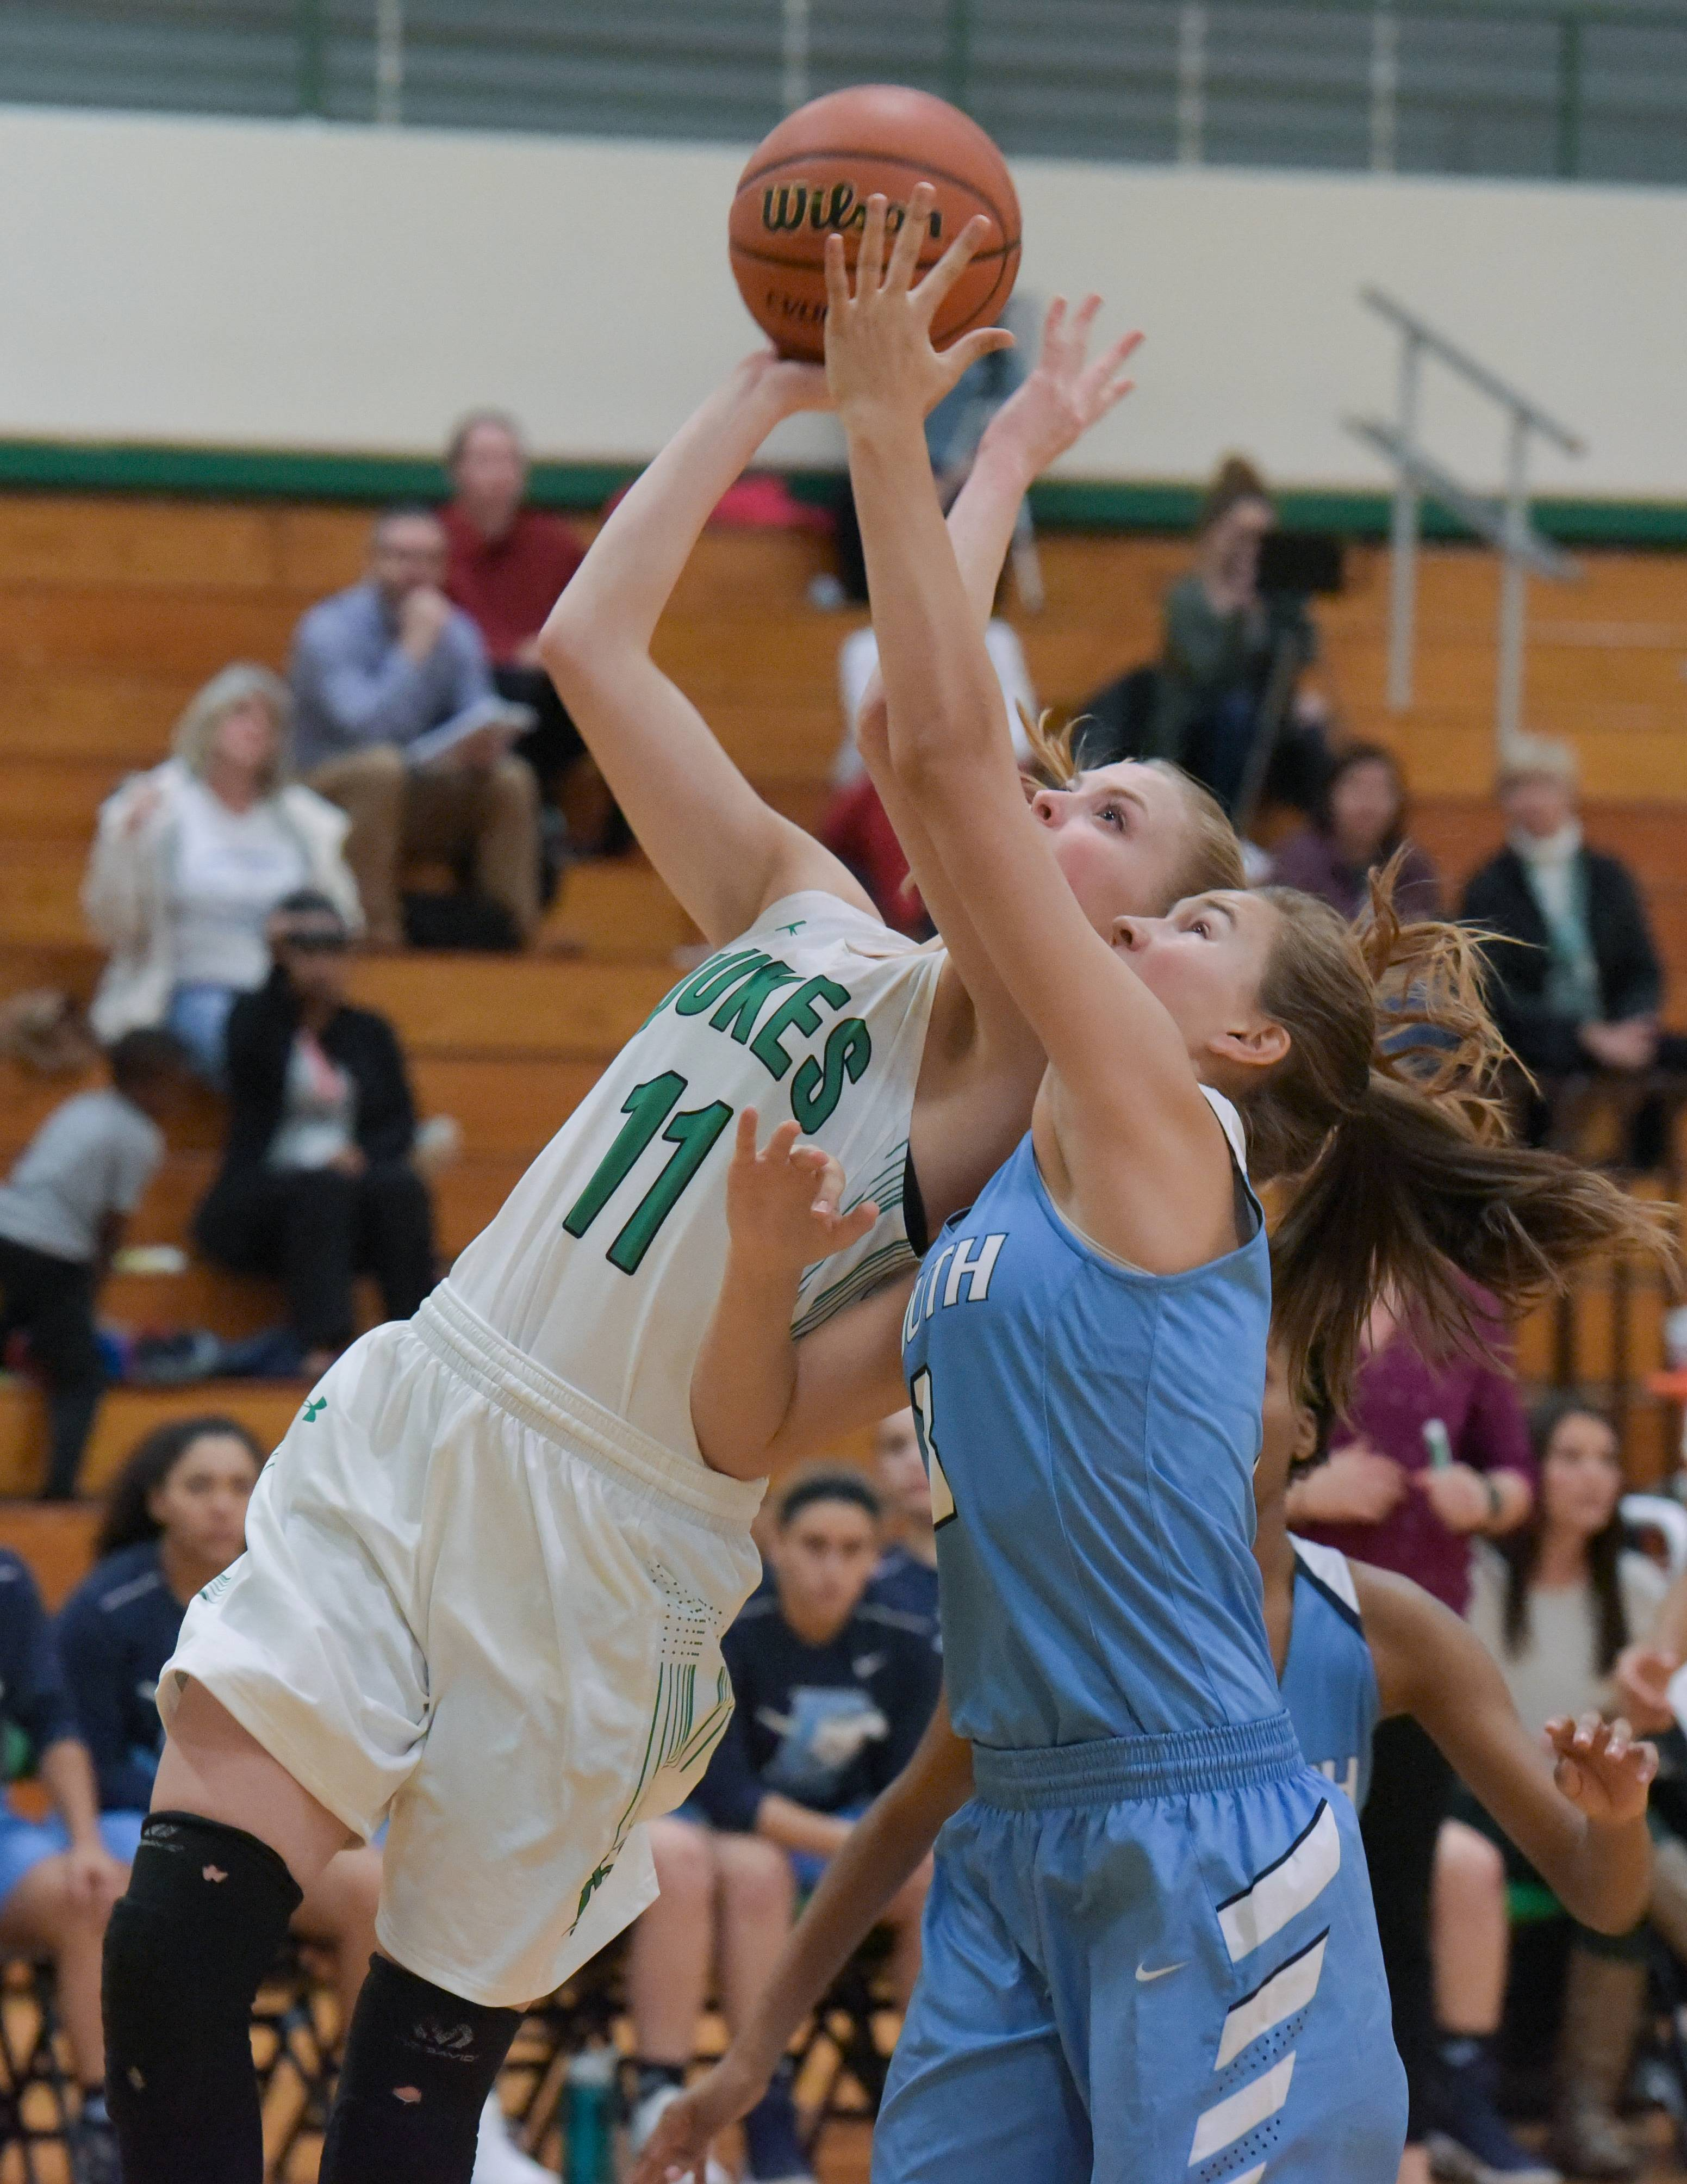 York's Danielle Dennis (11) takes a shot after getting past  Downers Grove South's Meghan Stapleton (3) during the York High School Thanksgiving girls basketball tournament on November 14, 2017.